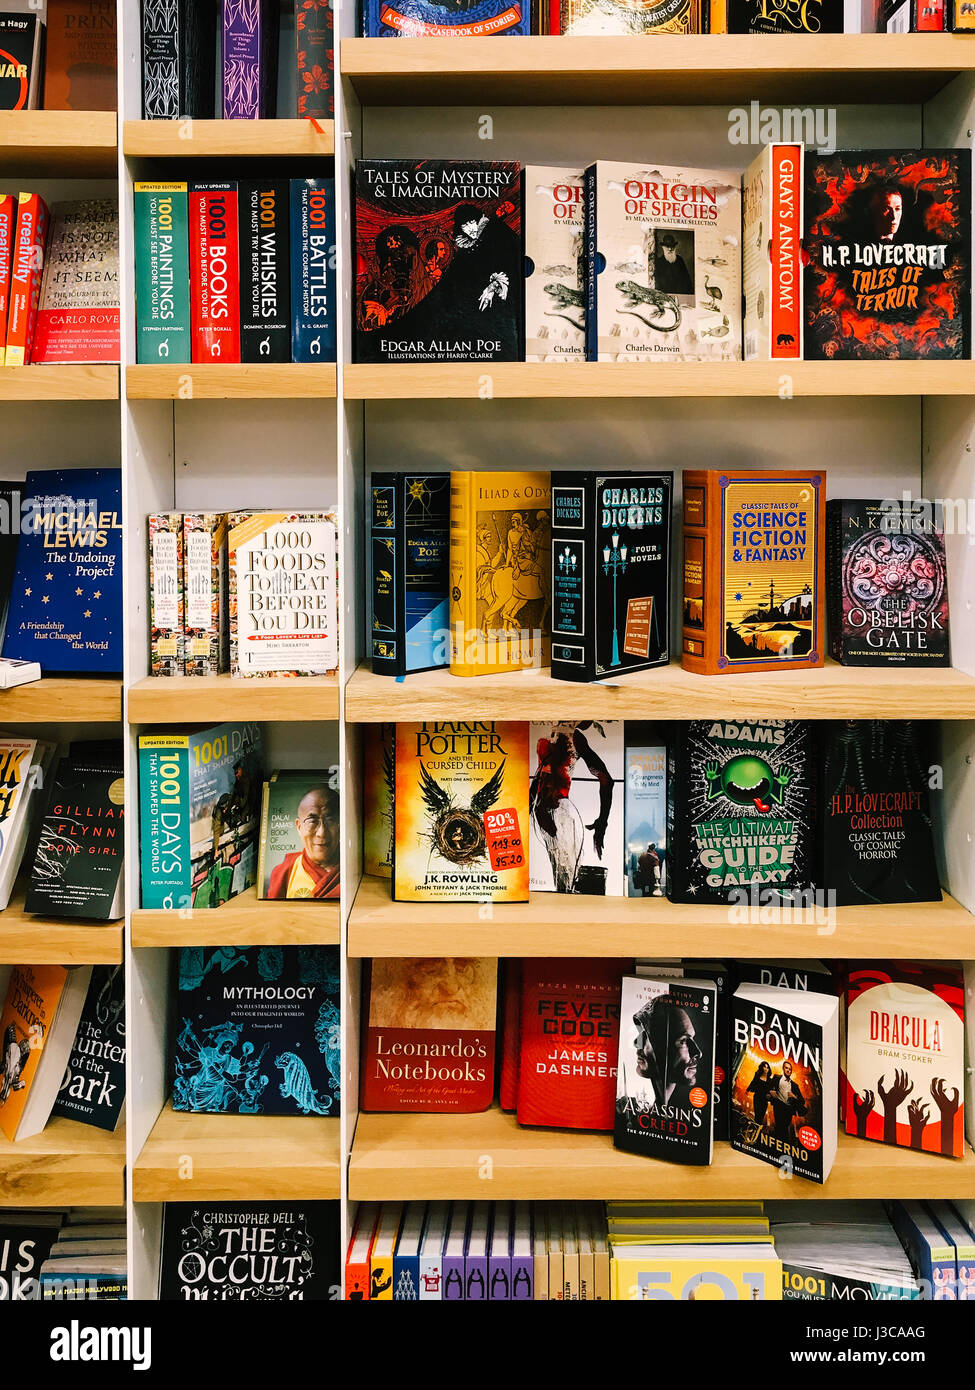 BUCHAREST, ROMANIA - JANUARY 24, 2017: Science Fiction Literature Books For Sale In Bookstore Shelves. - Stock Image